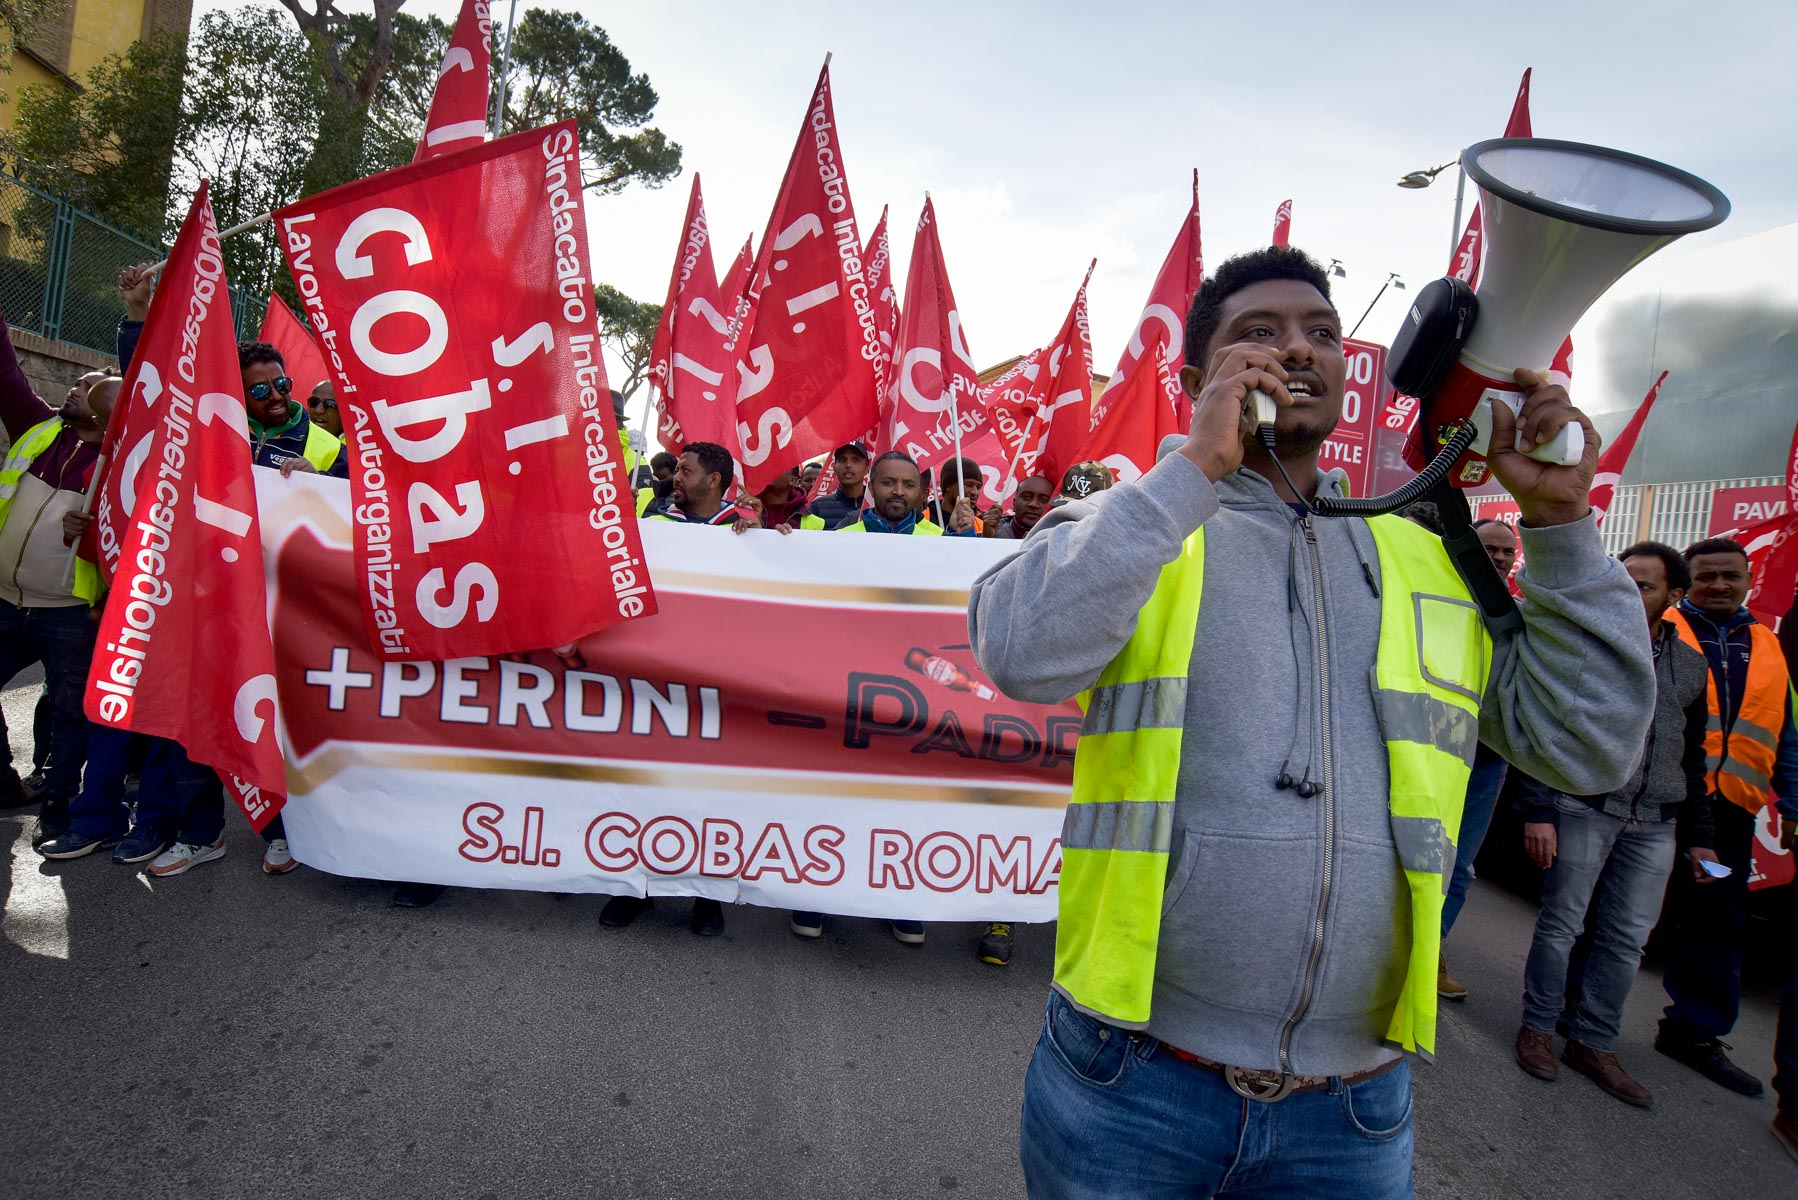 29 February 2020: Long-term Peroni beer factory workers march in Rome, Italy. The Ethiopian and Eritrean refugees were protesting against 'unsustainable contractual conditions' and 'wrong payrolls that do not respect the hours'. (Photograph by Simona Granati – Corbis/ Getty Images)